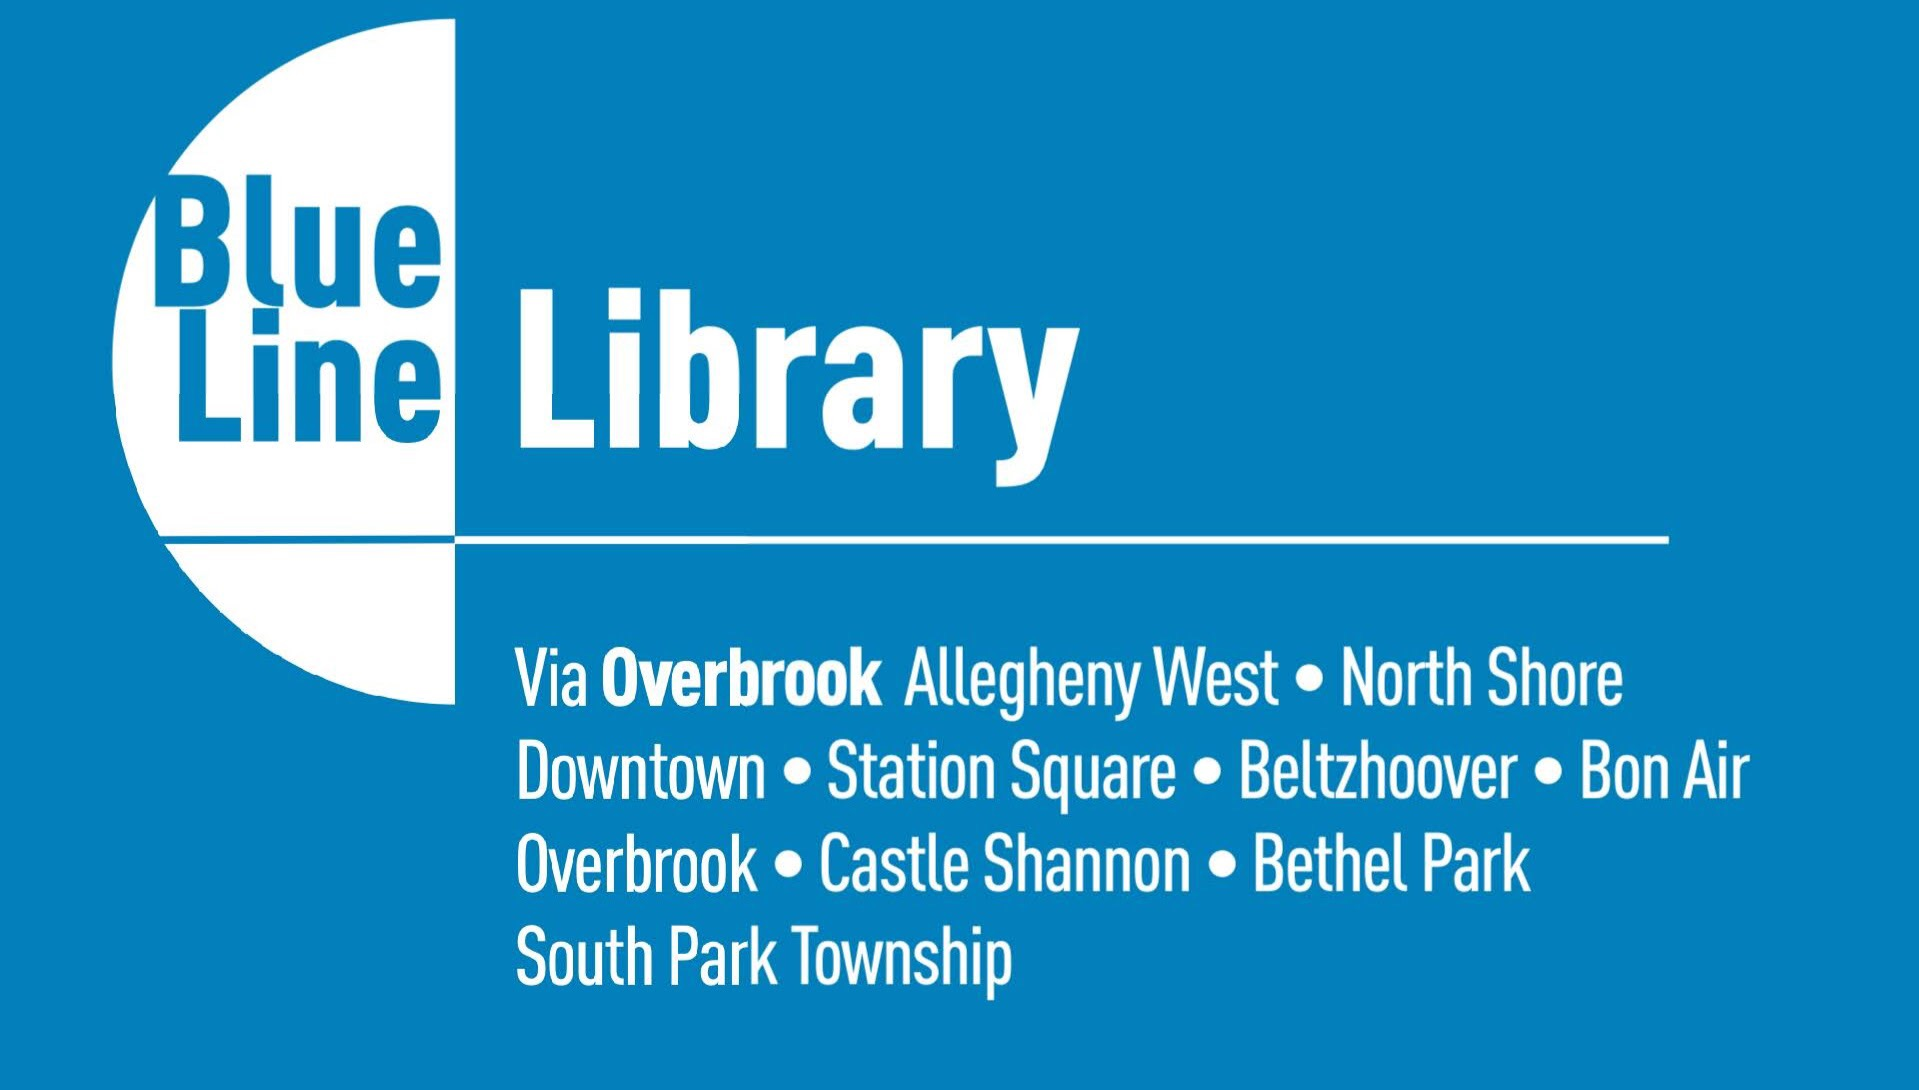 Silver Line Library